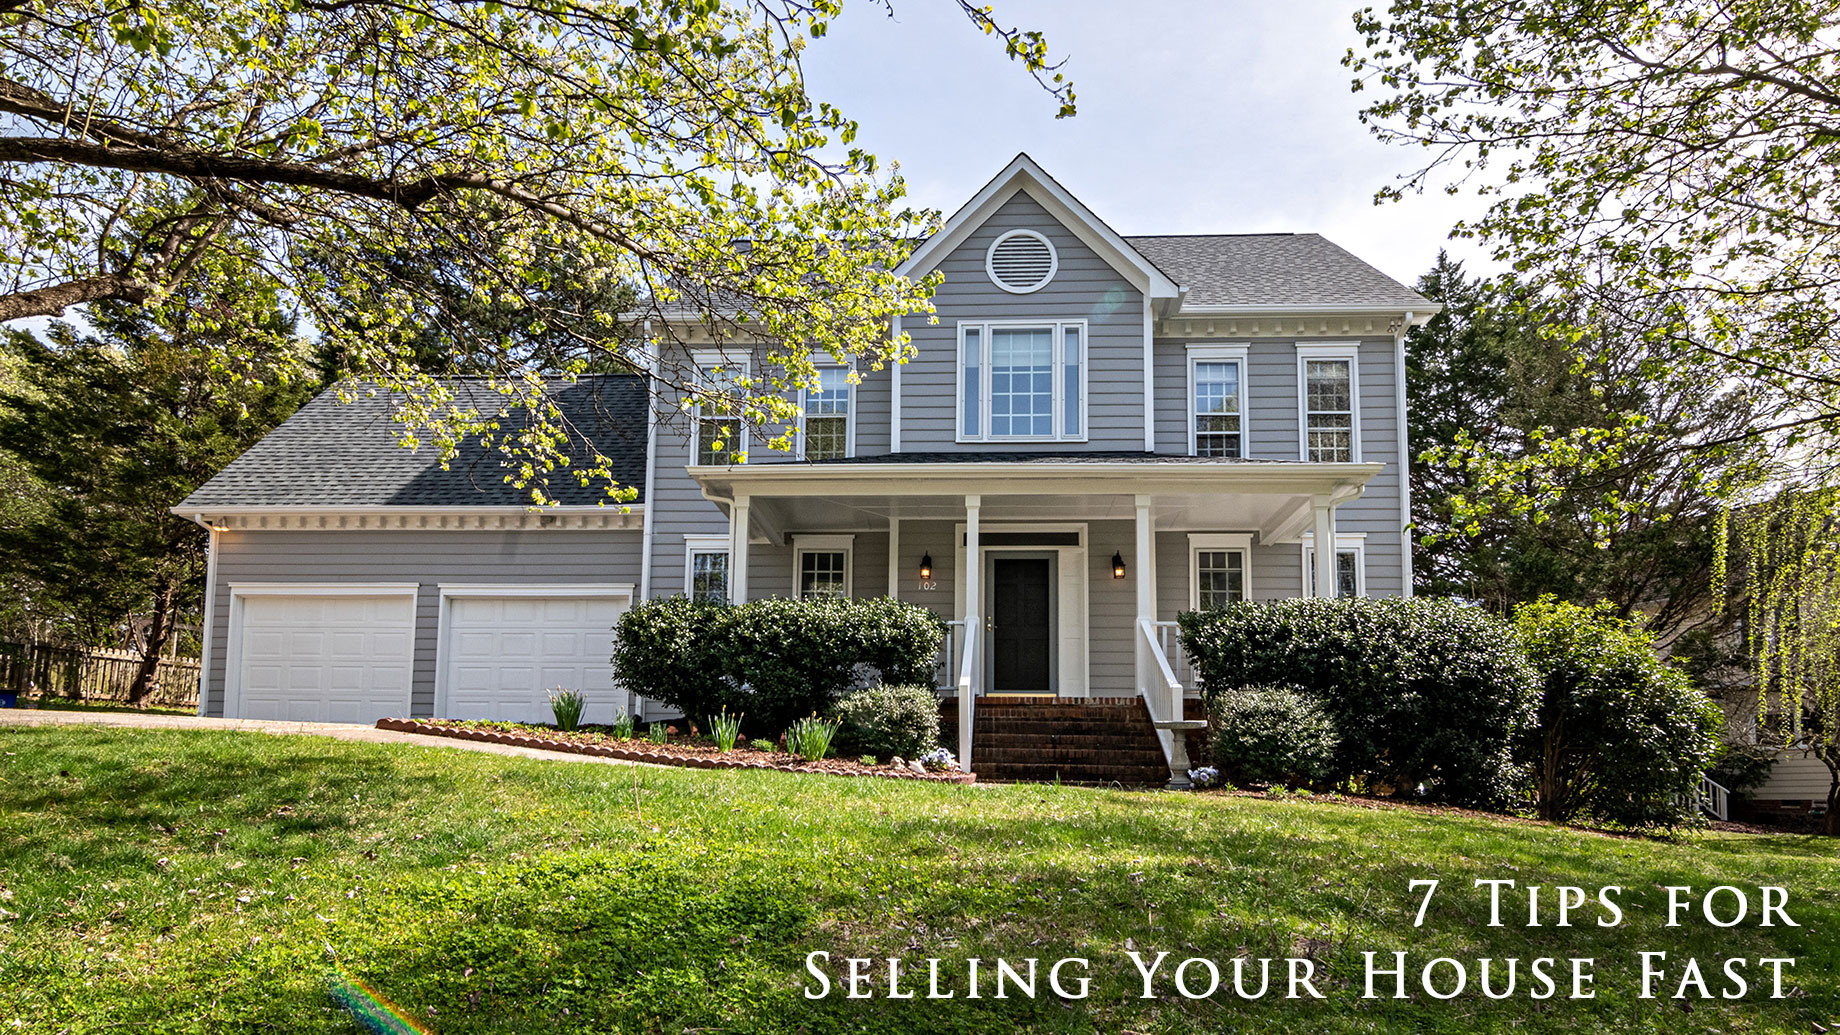 7 Tips for Selling Your House Fast